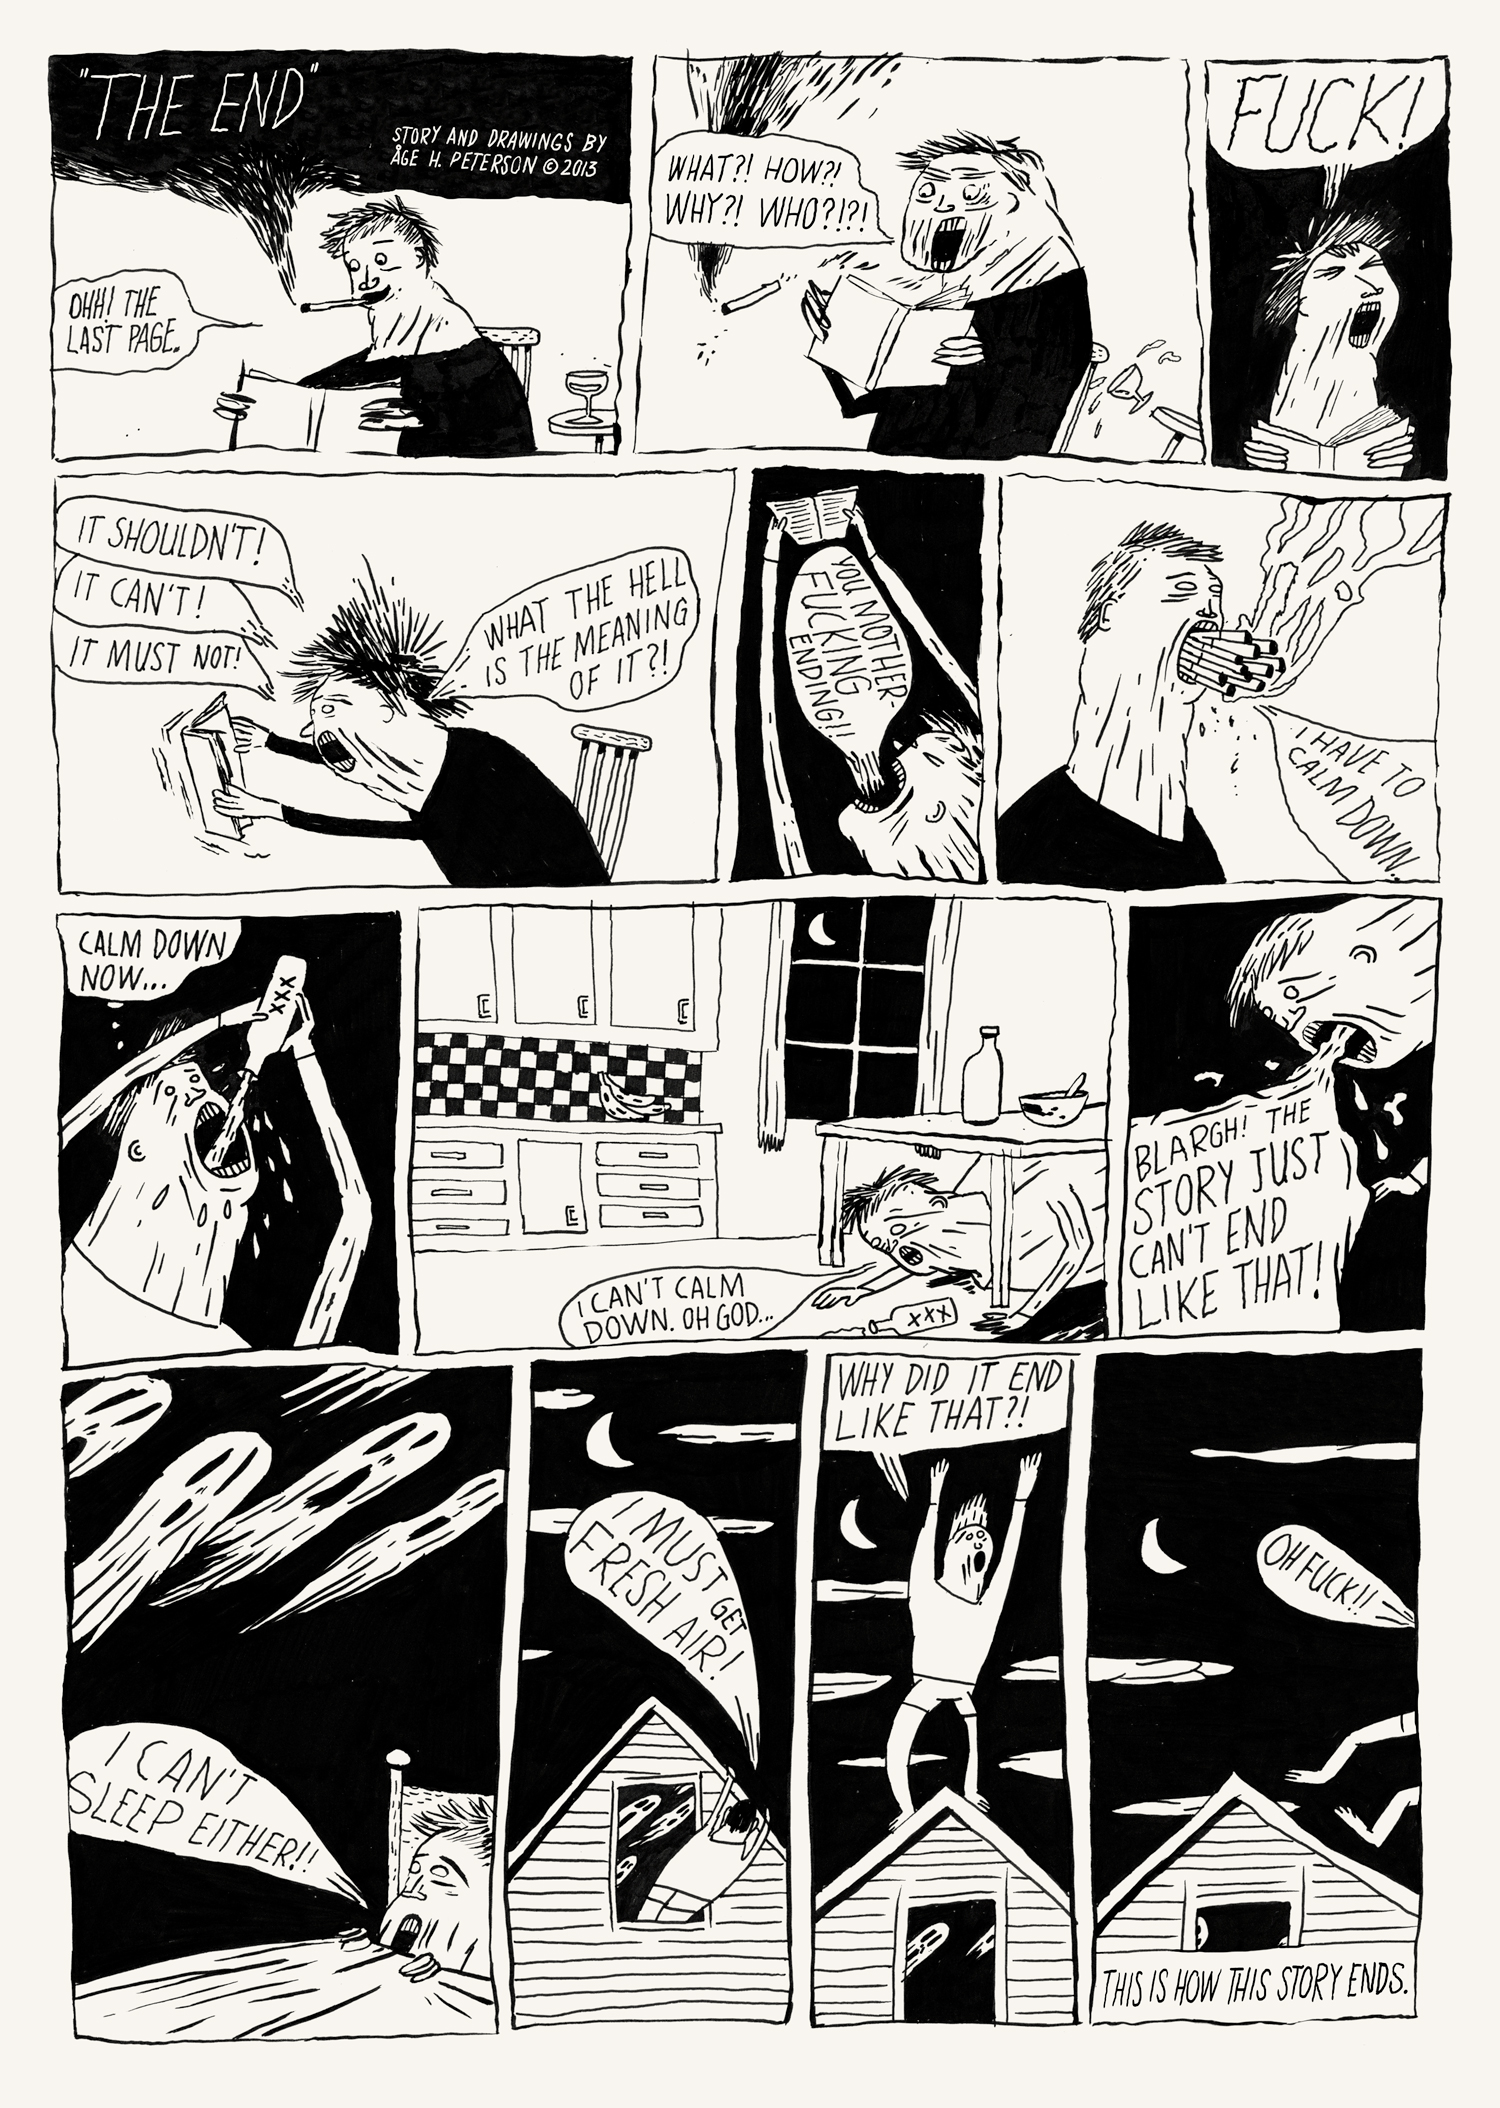 The End  (July, 2013). A one page comic about the end and published in the comic book,  Confusion Comic.